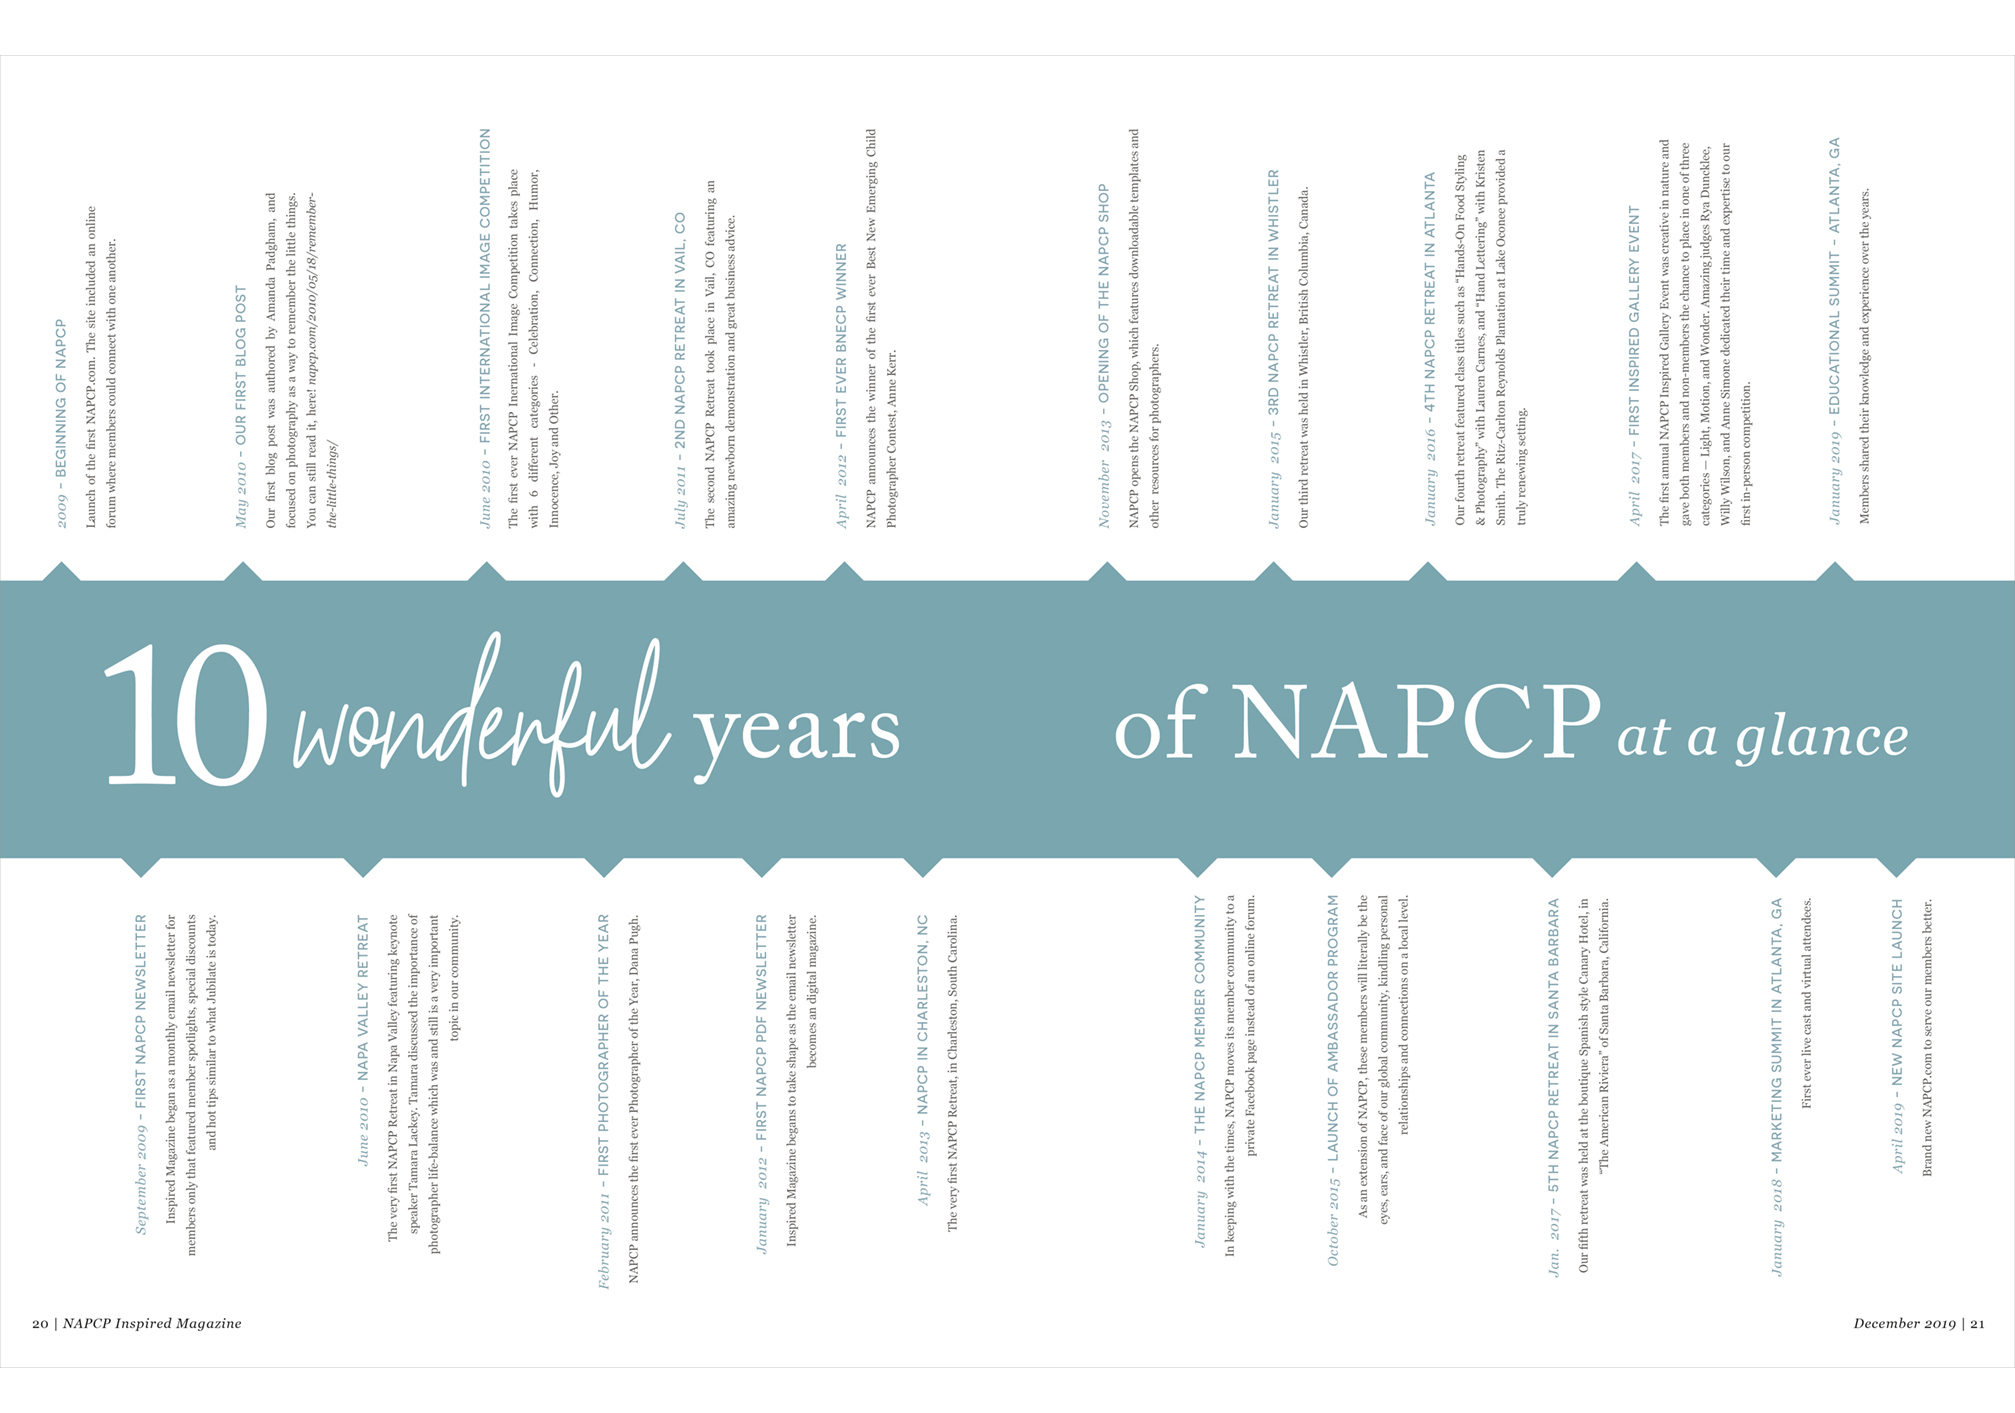 10 Wonderful Years of NAPCP at a Glance